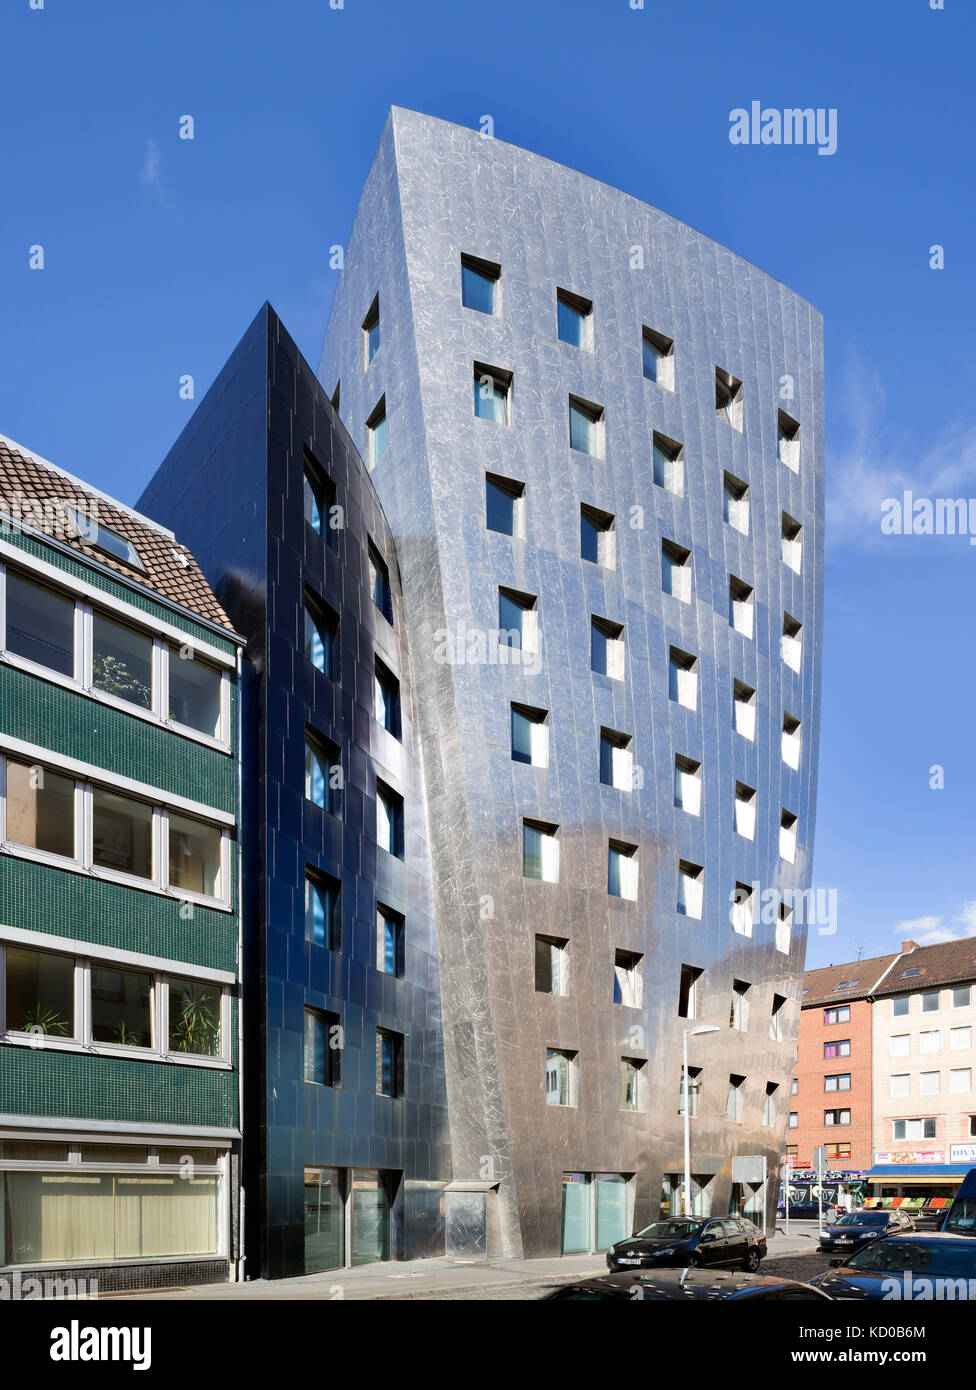 Gehry-Tower Hannover, architect Frank O. Gehry, office and event building, city centre, Hanover, Lower Saxony, Germany - Stock Image